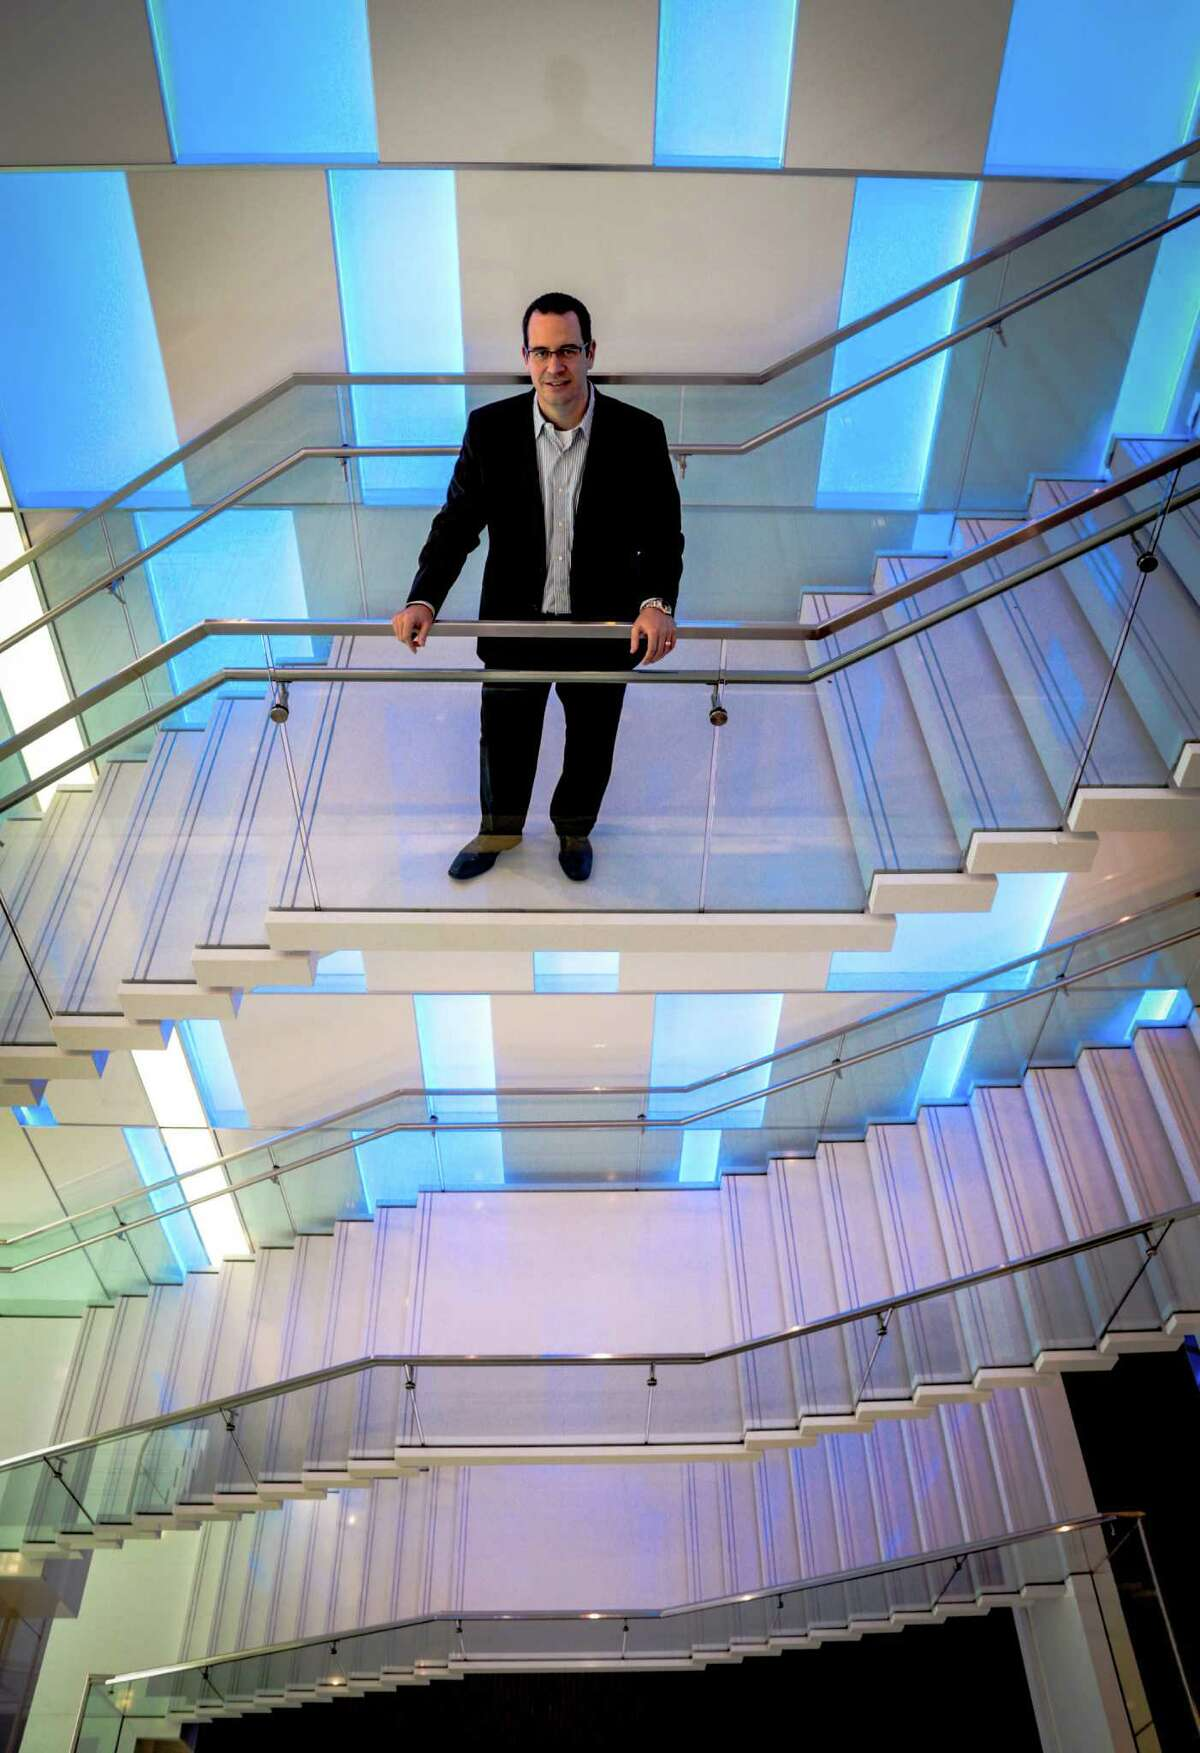 Jeremy Fingeret, senior managing director of Houston-based alliantgroup at the company's headquarters, Wednesday July 8. 2015. Alliantgroup's building opened in January of 2014 and they occupy the top floors, 17 through 20, and are in the process of building out the 16th floor with a gym. Alliantgroup helps small to mid-size businesses take advantage of tax credits such as the 179D tax credit for energy-efficient buildings. As one of the few LEED Platinum buildings in Houston, their offices showcase the latest in energy efficiency and design as a nice work environment for employees. Floor-to-ceiling windows, coated with a film to keep the heat out and the cool air in, allow natural light for workers to enjoy. The offices are in the middle of the building so everyone has access to the natural light. LEED is the U.S. Green Building Council's certification for green buildings and stands for